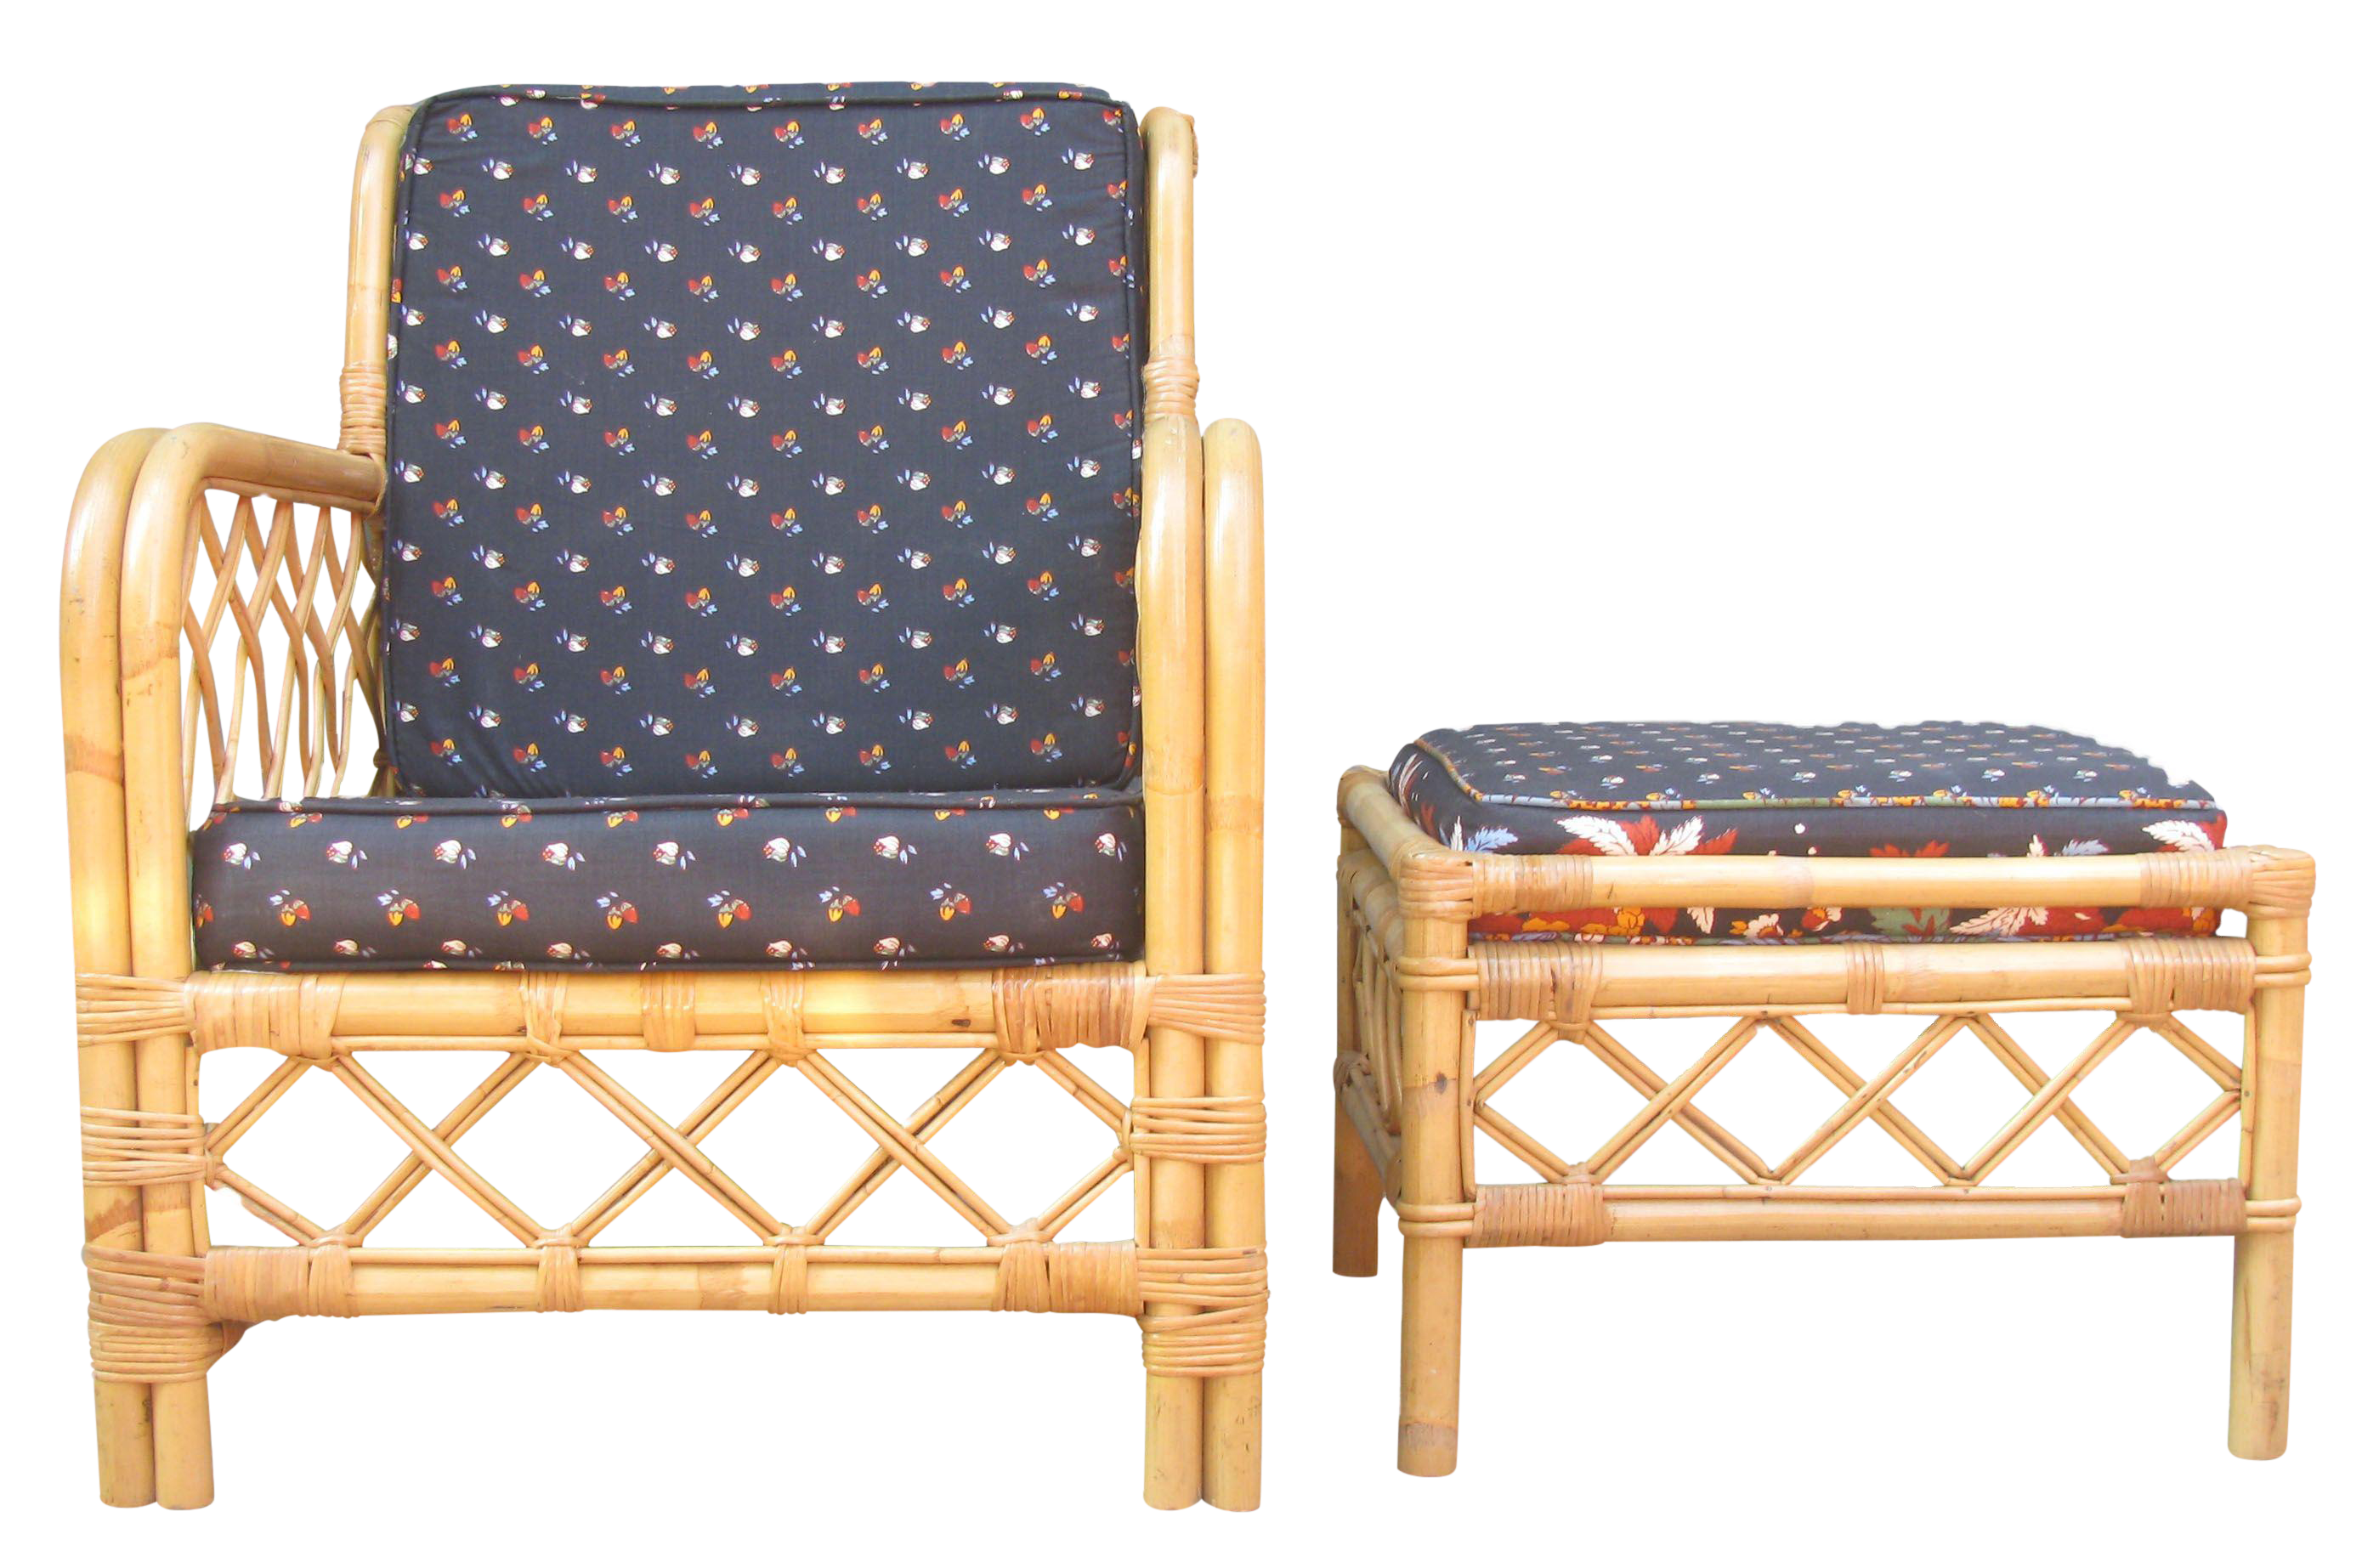 Ficks Reed Bamboo Chair u0026 Ottoman / Side Table  sc 1 st  Chairish & Vintage u0026 Used Rattan Chair and Ottoman Sets | Chairish